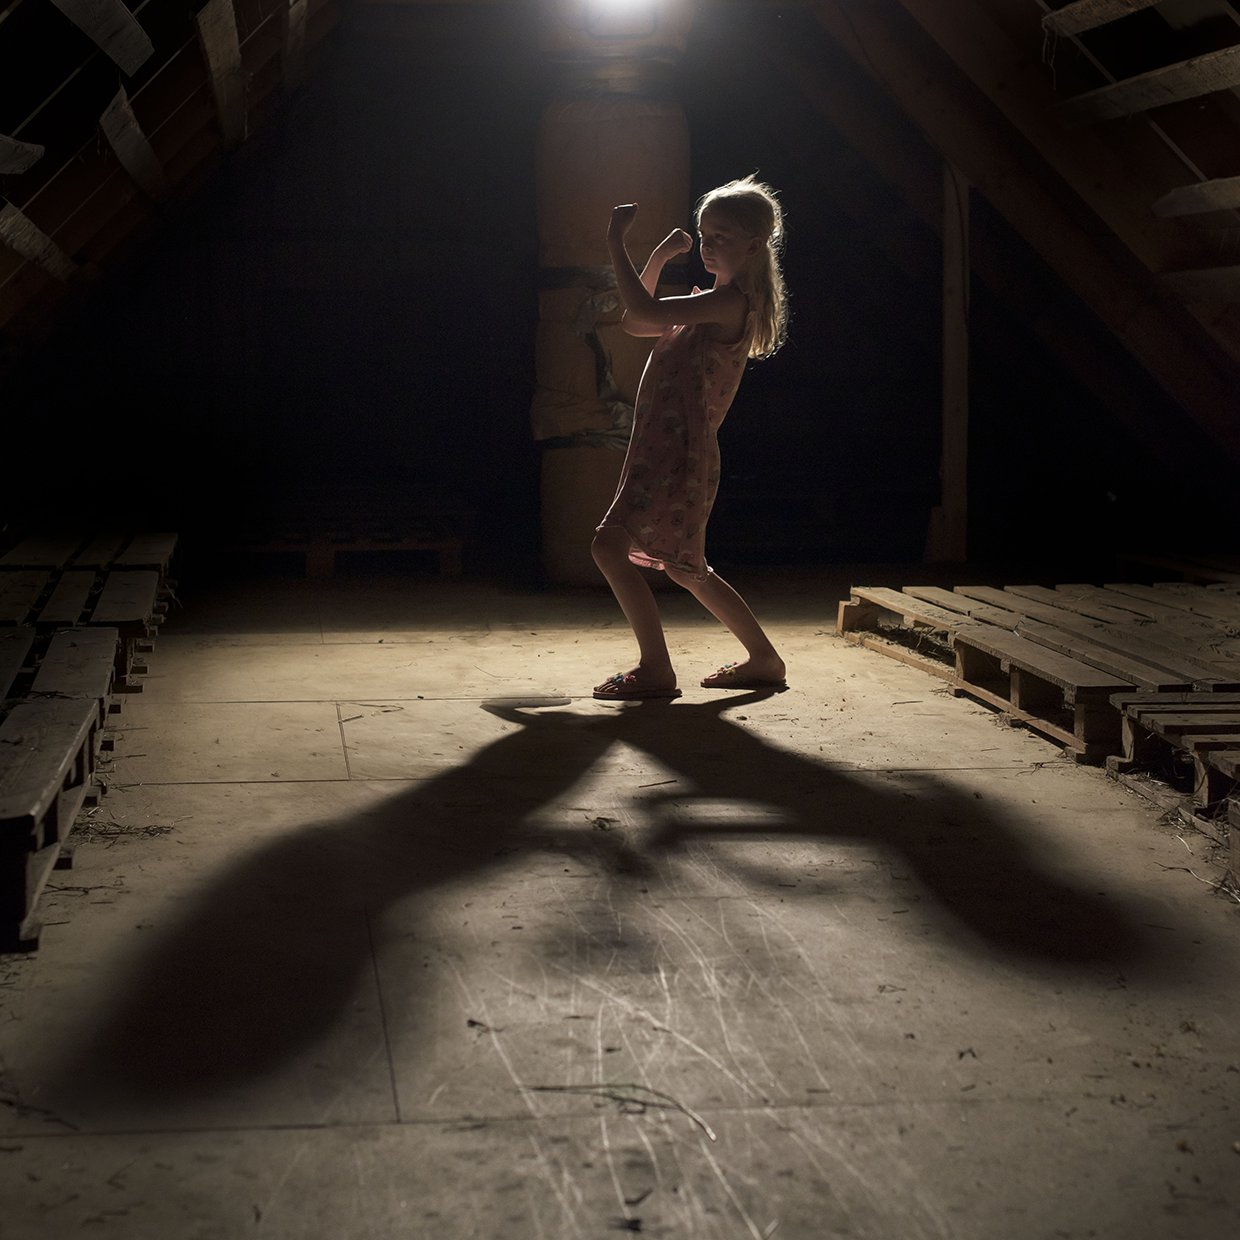 hjorthmedh-a-swedish-fairy-tale-2-shadow-boxing